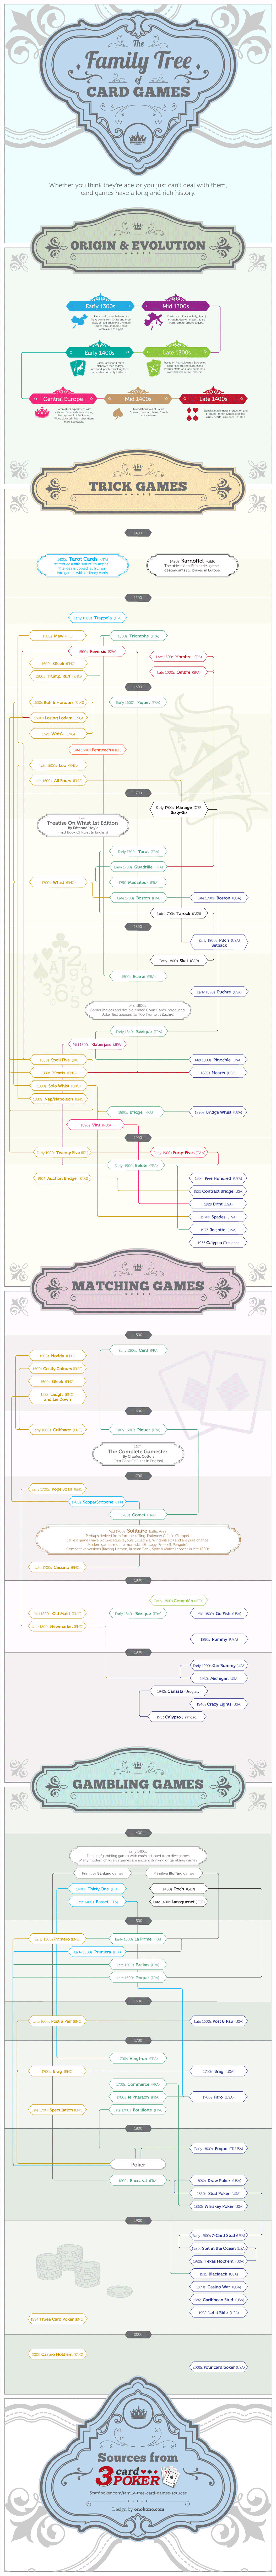 Family Tree of Card Games info-graphic